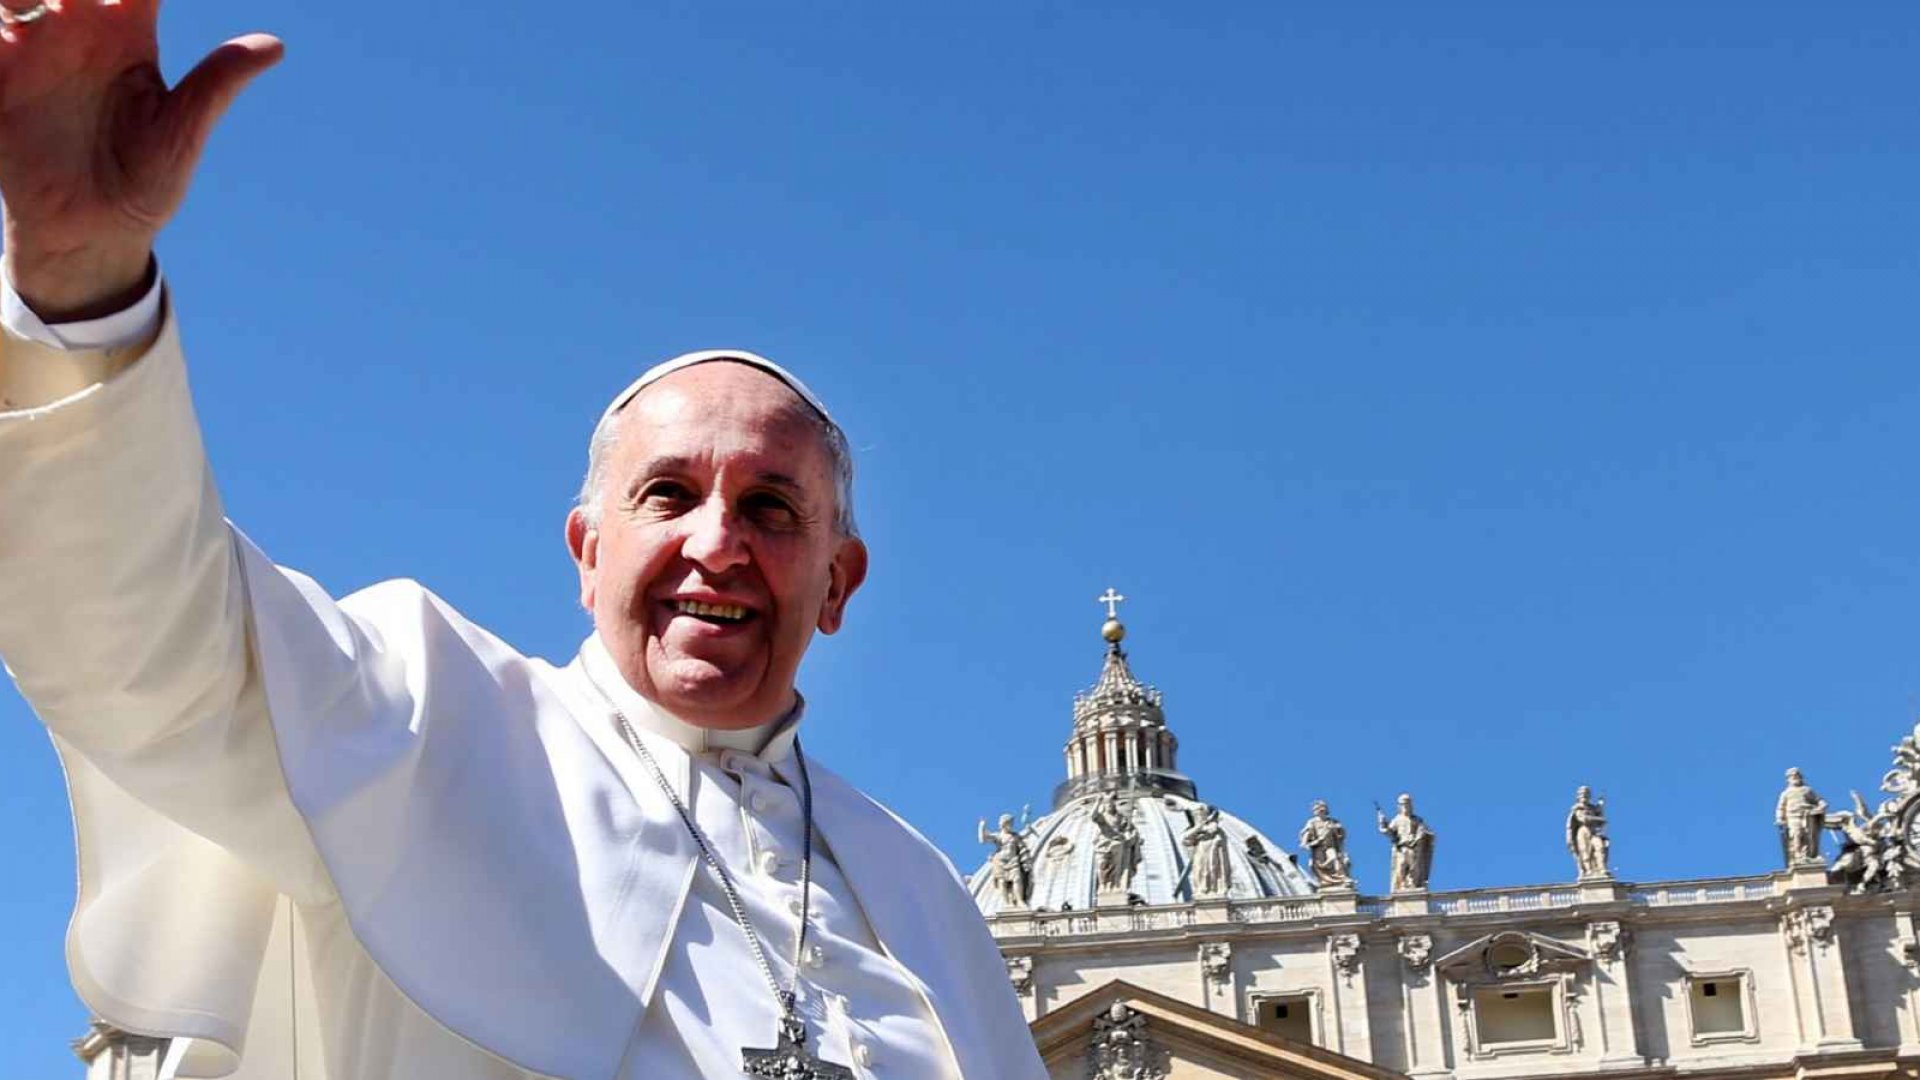 Pope Francis at the Vatican.